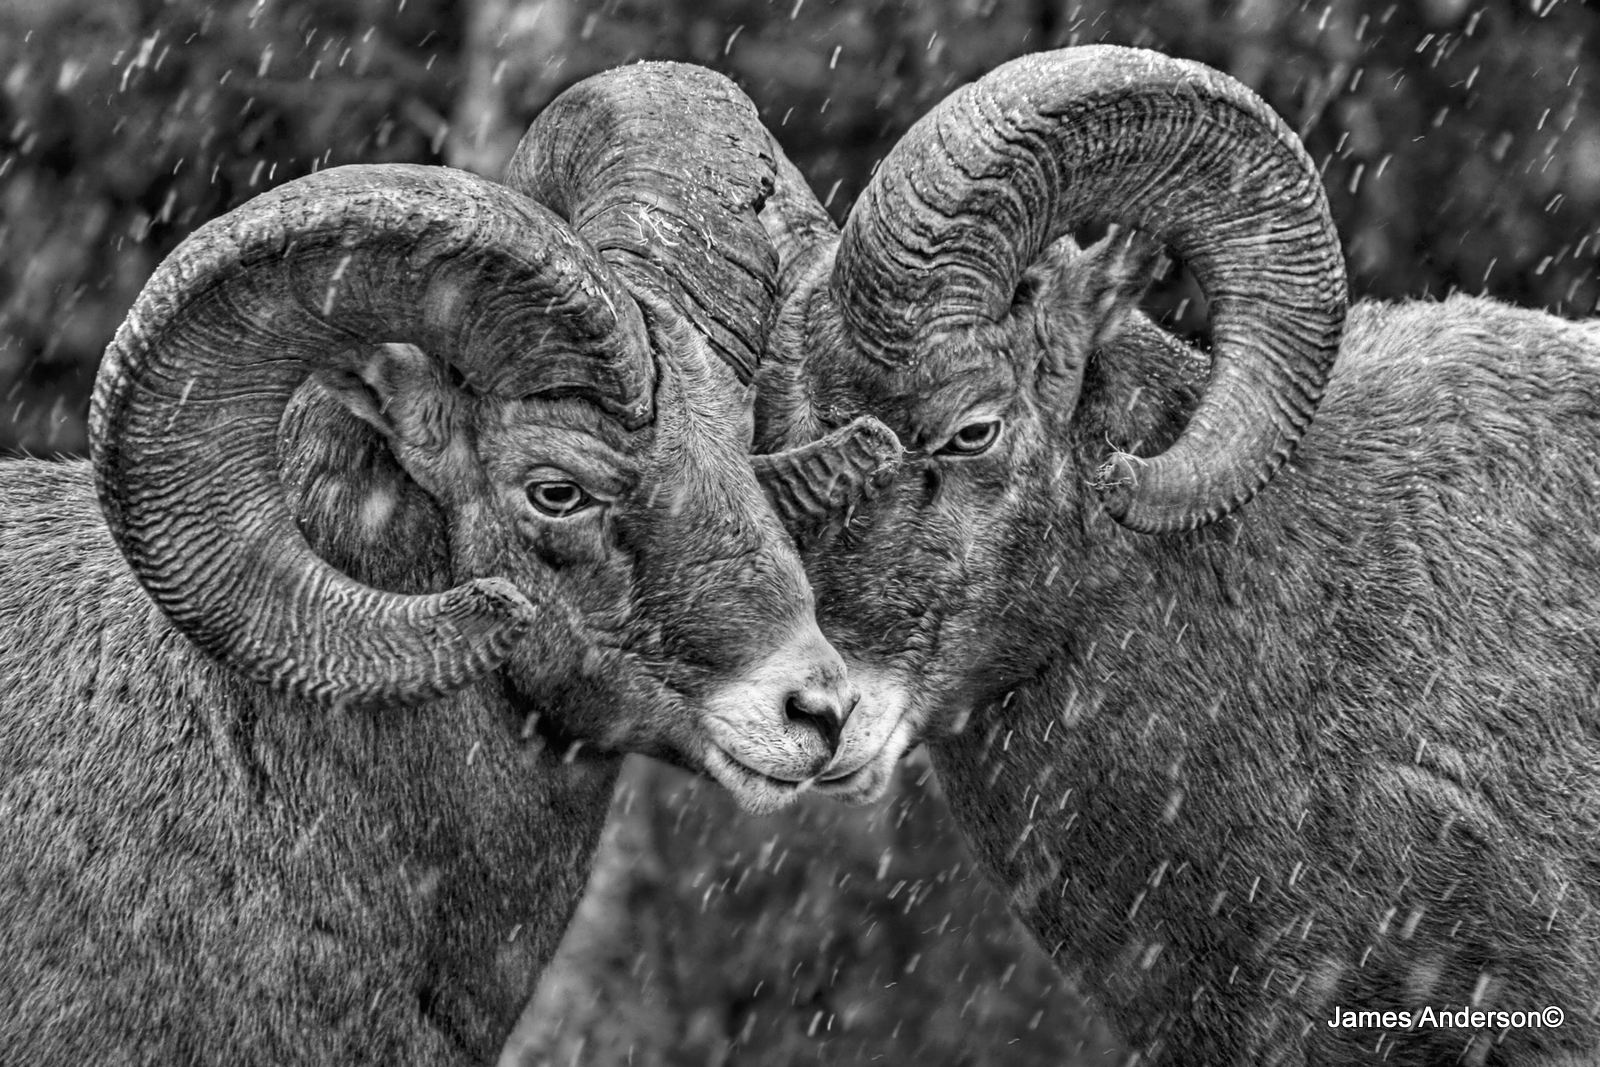 rebel rams in CPAWS Capture Whe Wild Photo Contest